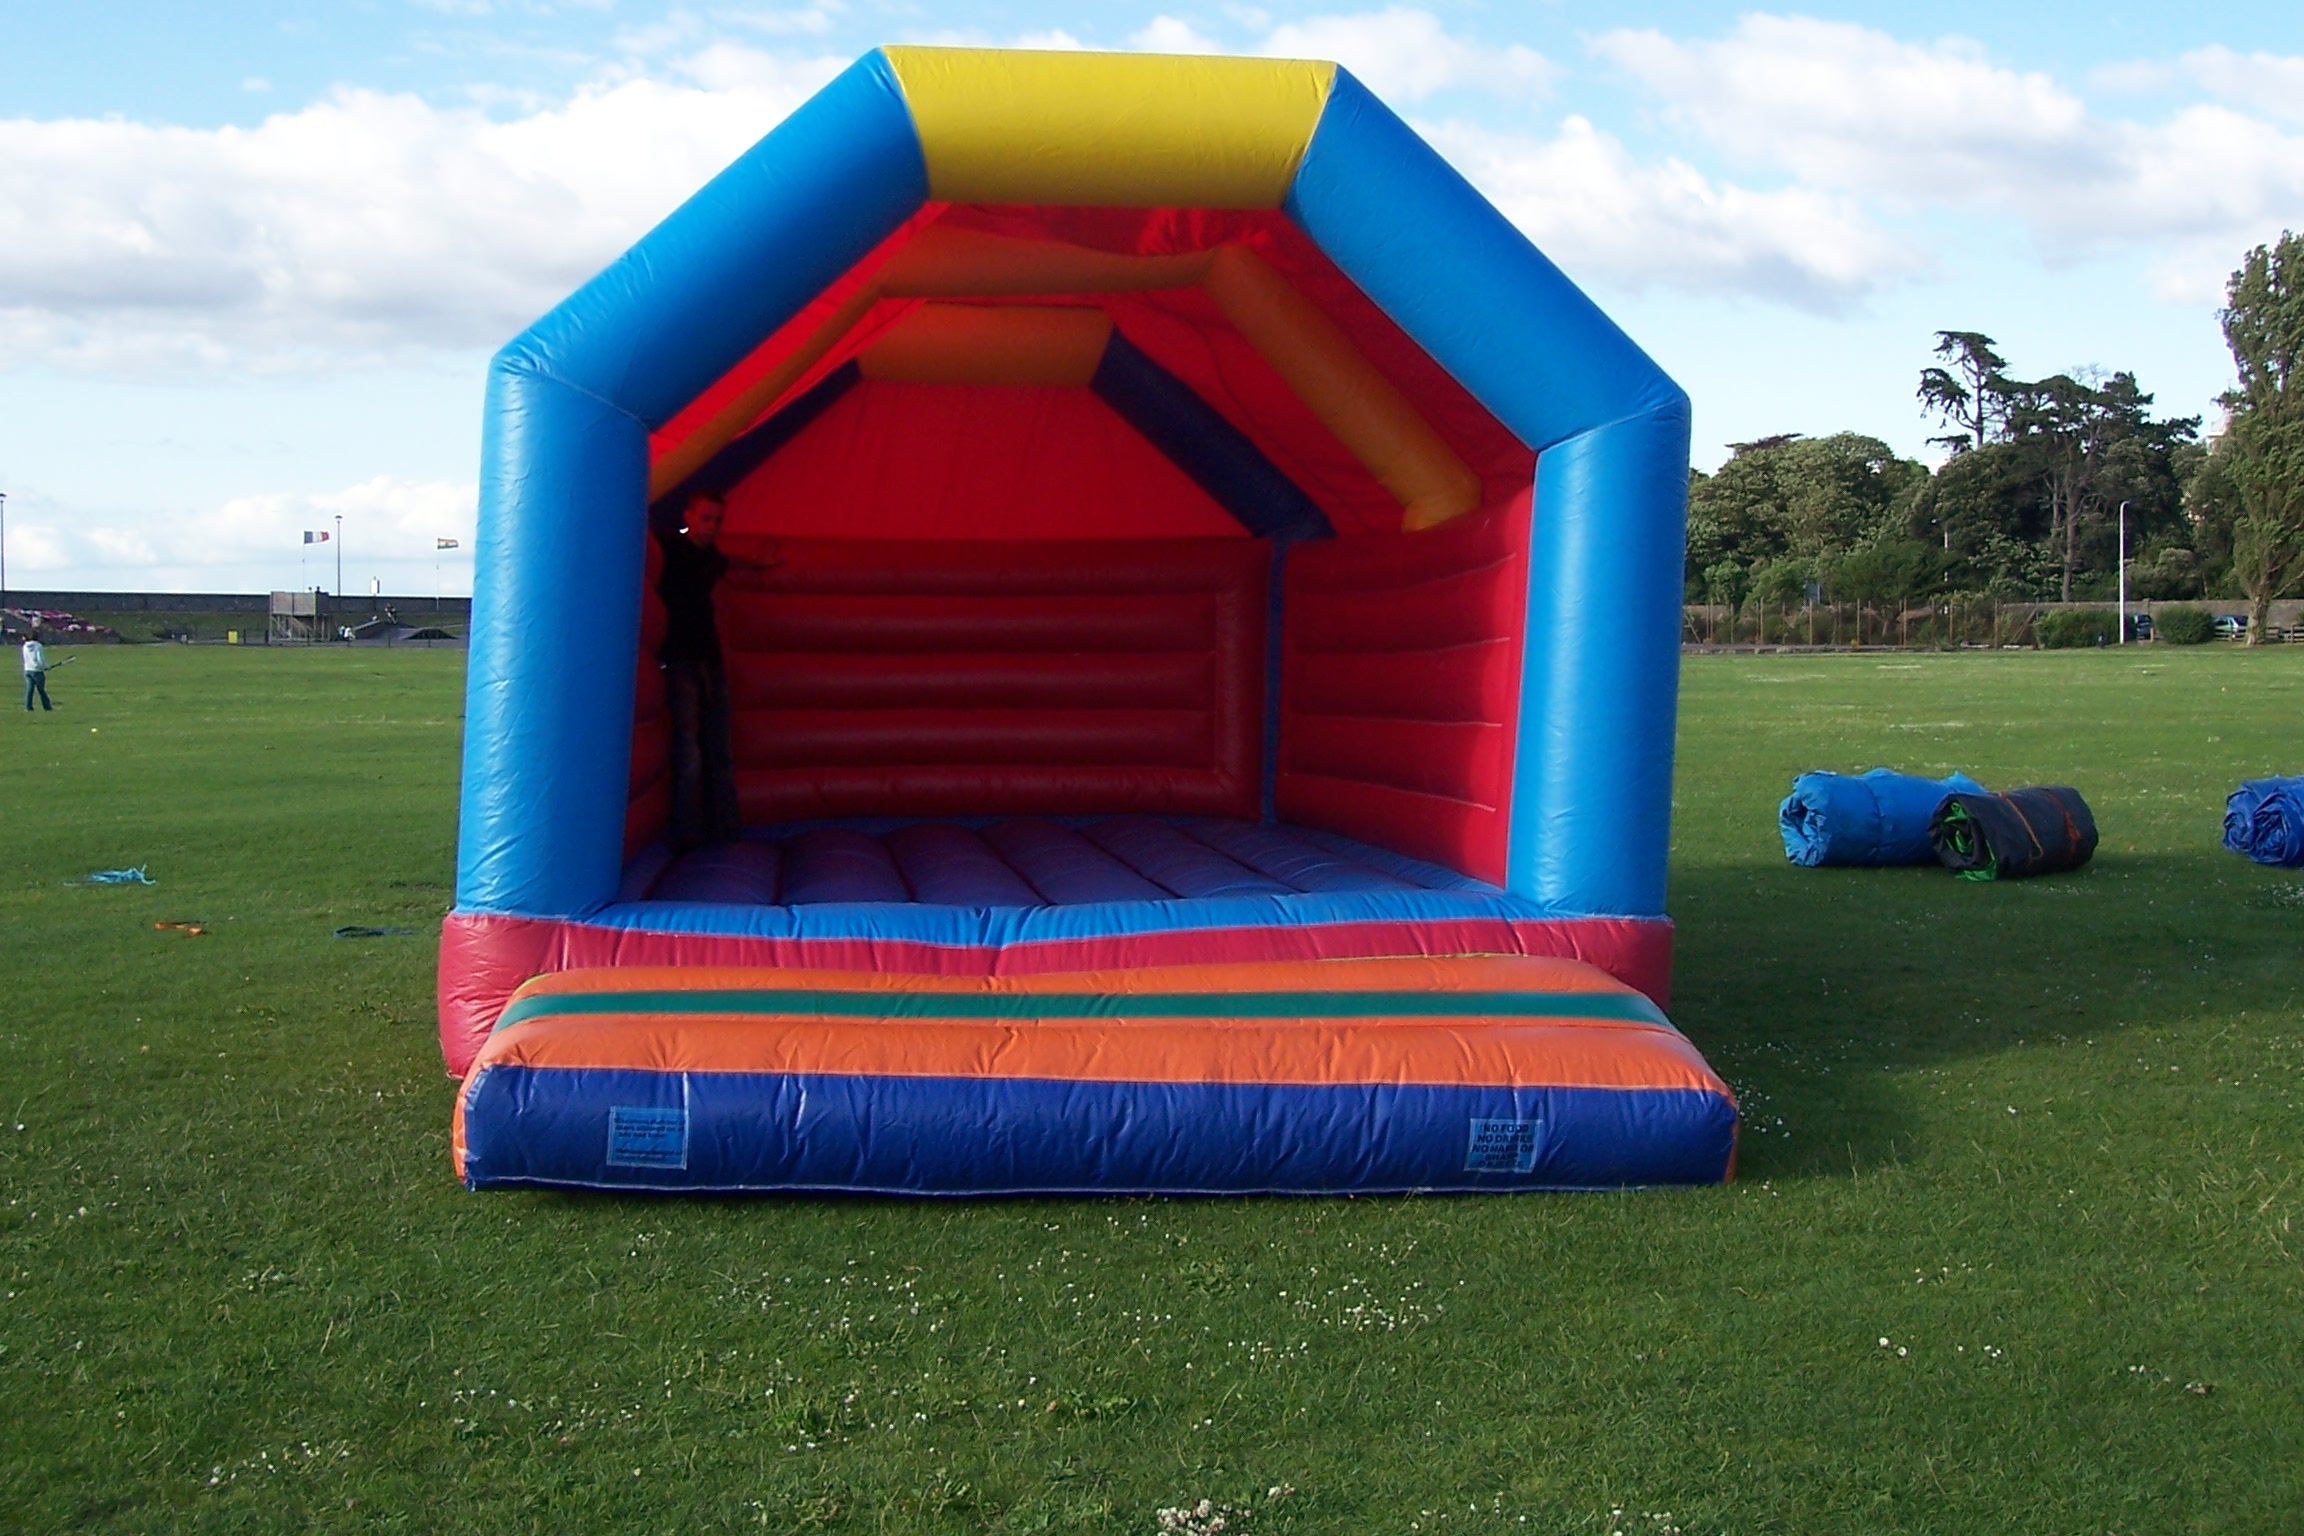 This value for money Bumper Castle is great for super bouncing in medium sized spaces! Not too big, not too small, this bouncy castle is just right! Suitable for ages up to 14 years.